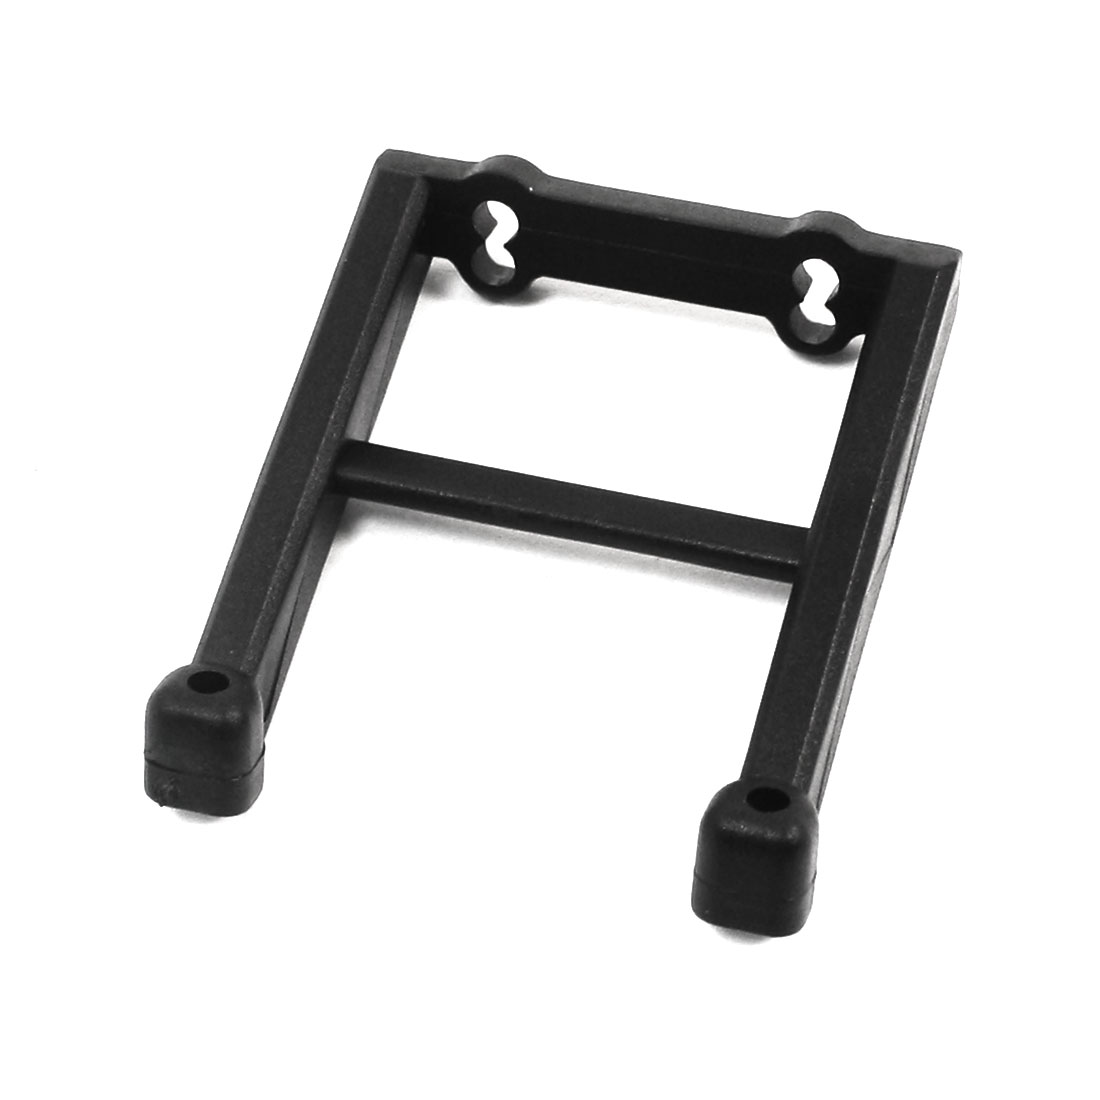 08031 Rear Shock Tower Holder Brace Parts for 1:10 RC Model Cars Buggy